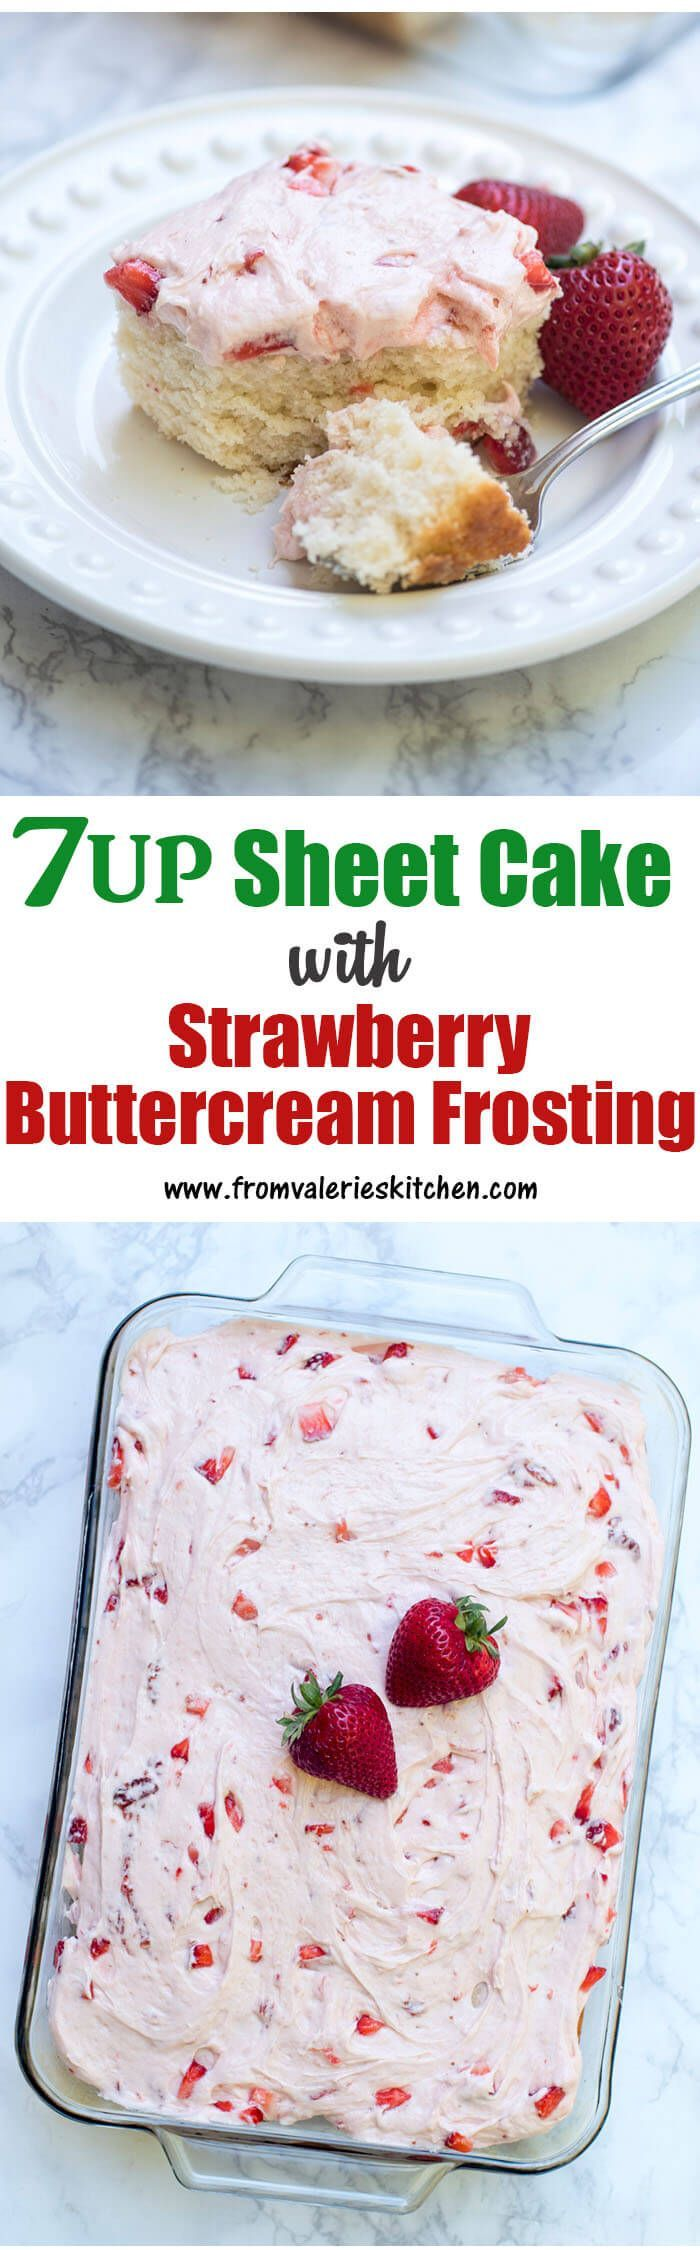 A moist and tender white cake with an easy strawberry buttercream frosting. This 7UP Sheet Cake will be a hit at your next gathering! #ad @7up #mixitupalittle